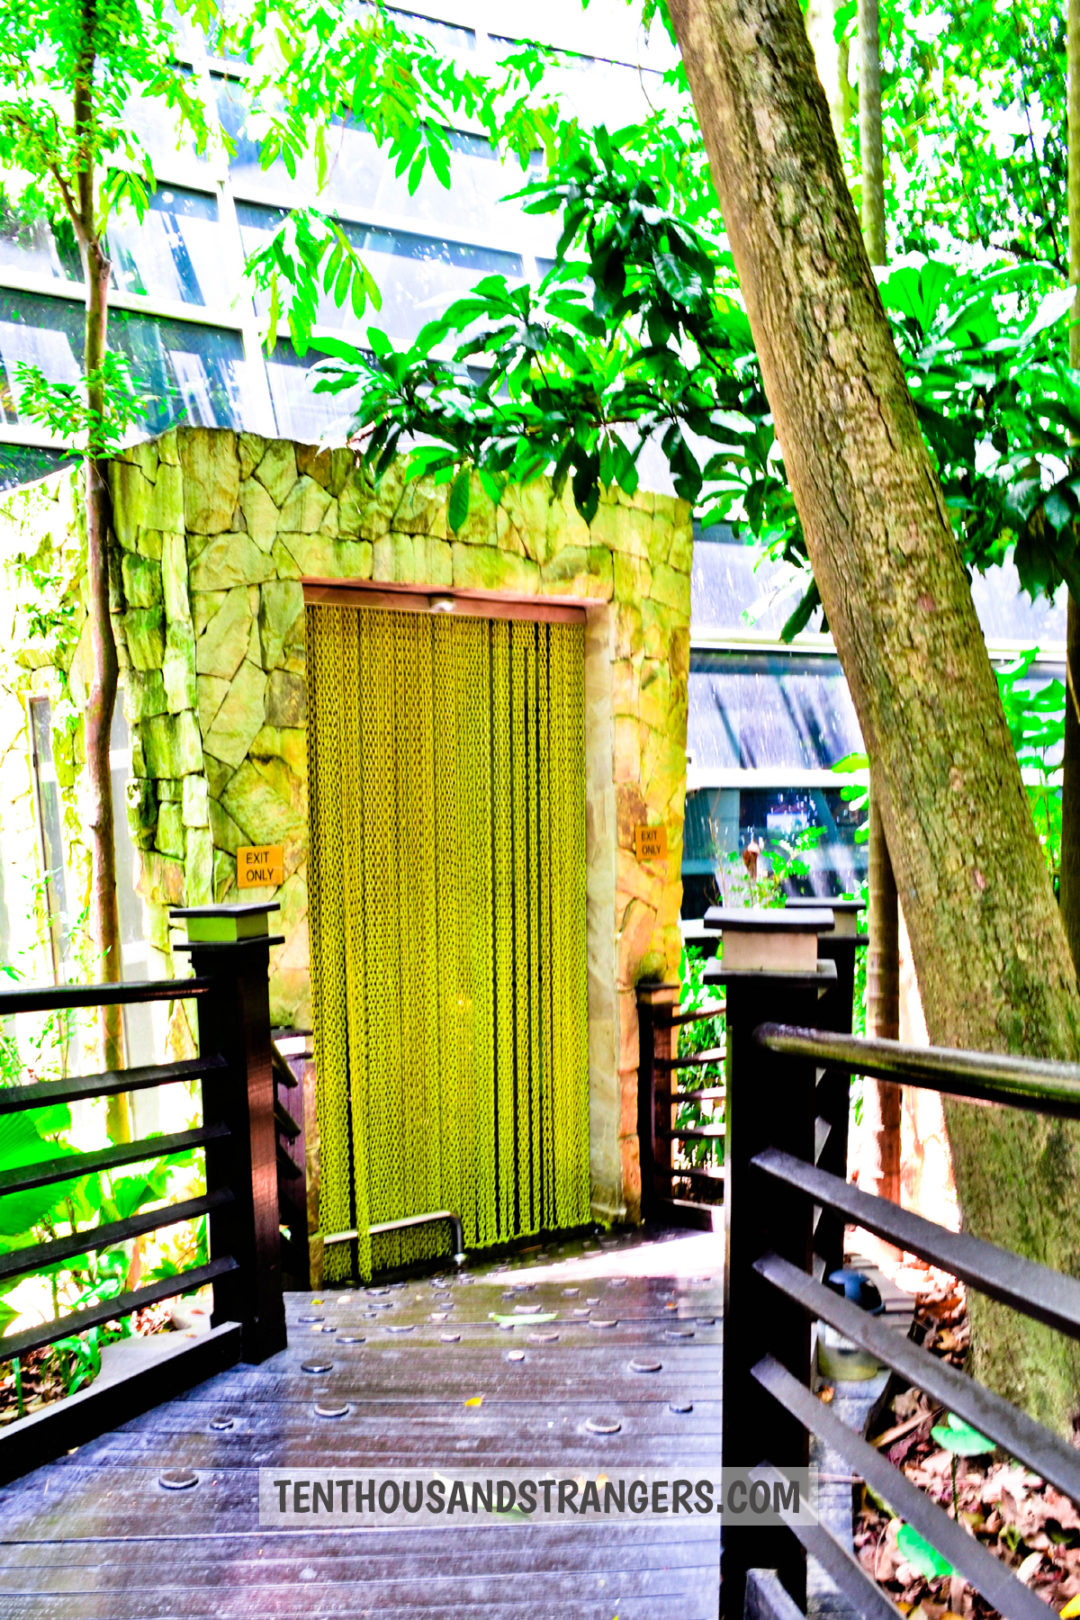 Yellow chain curtains at KLIA Jungle Boardwalk entrance/exit